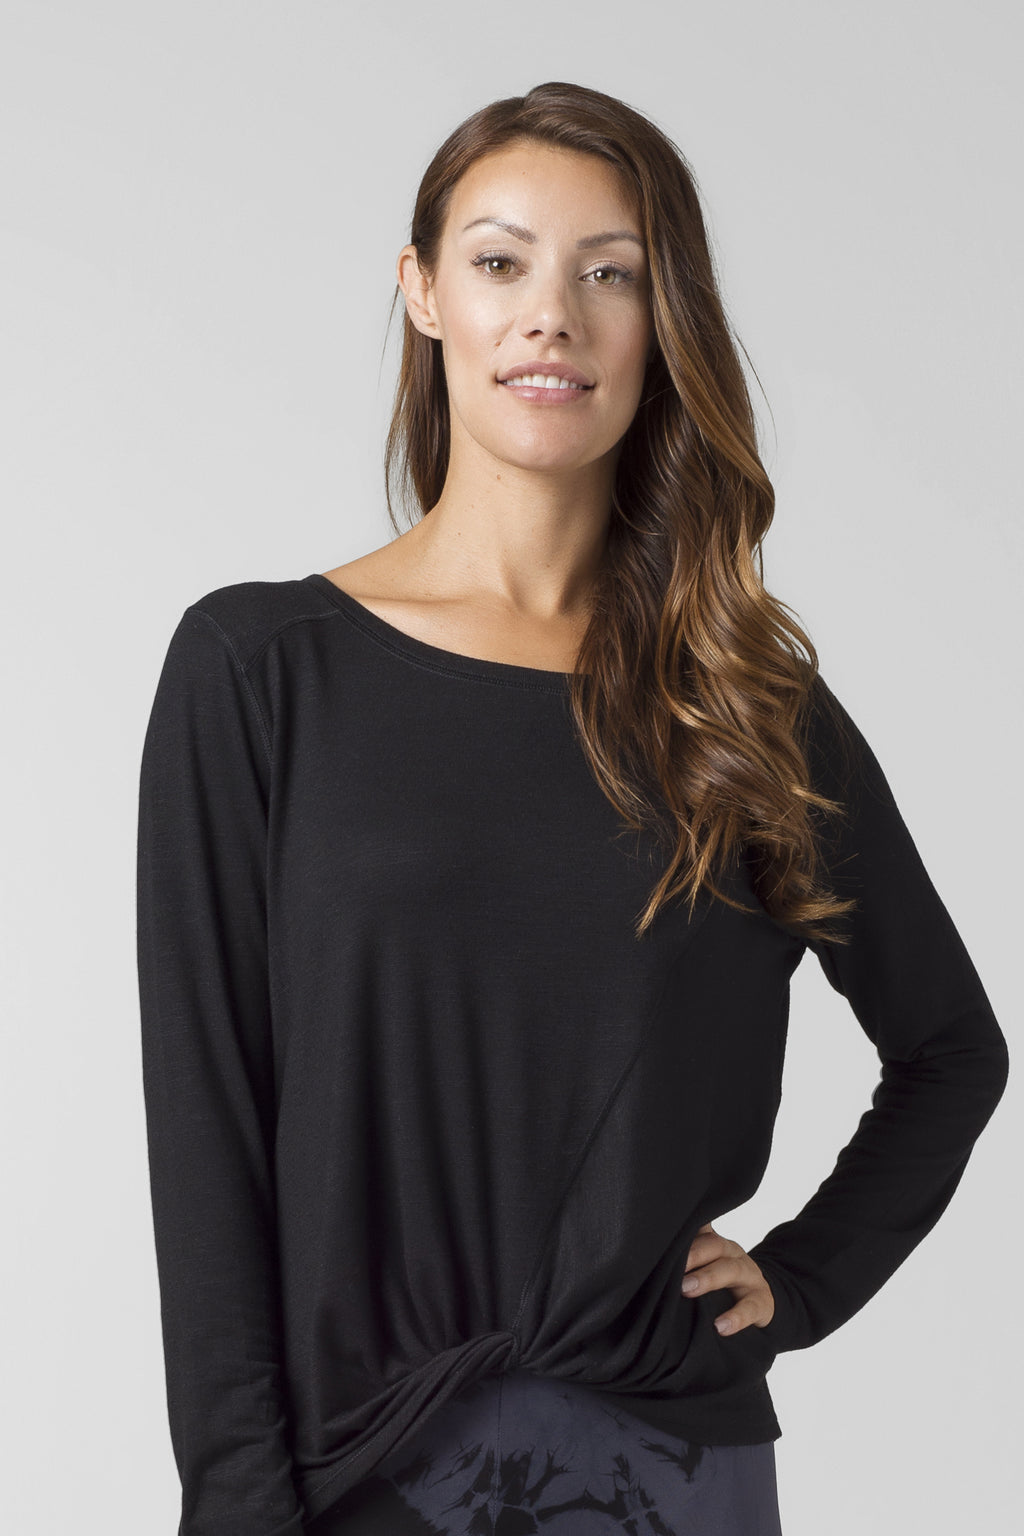 Sweat Society Ethical Activewear Daub and Design Juliet Black Canada USA